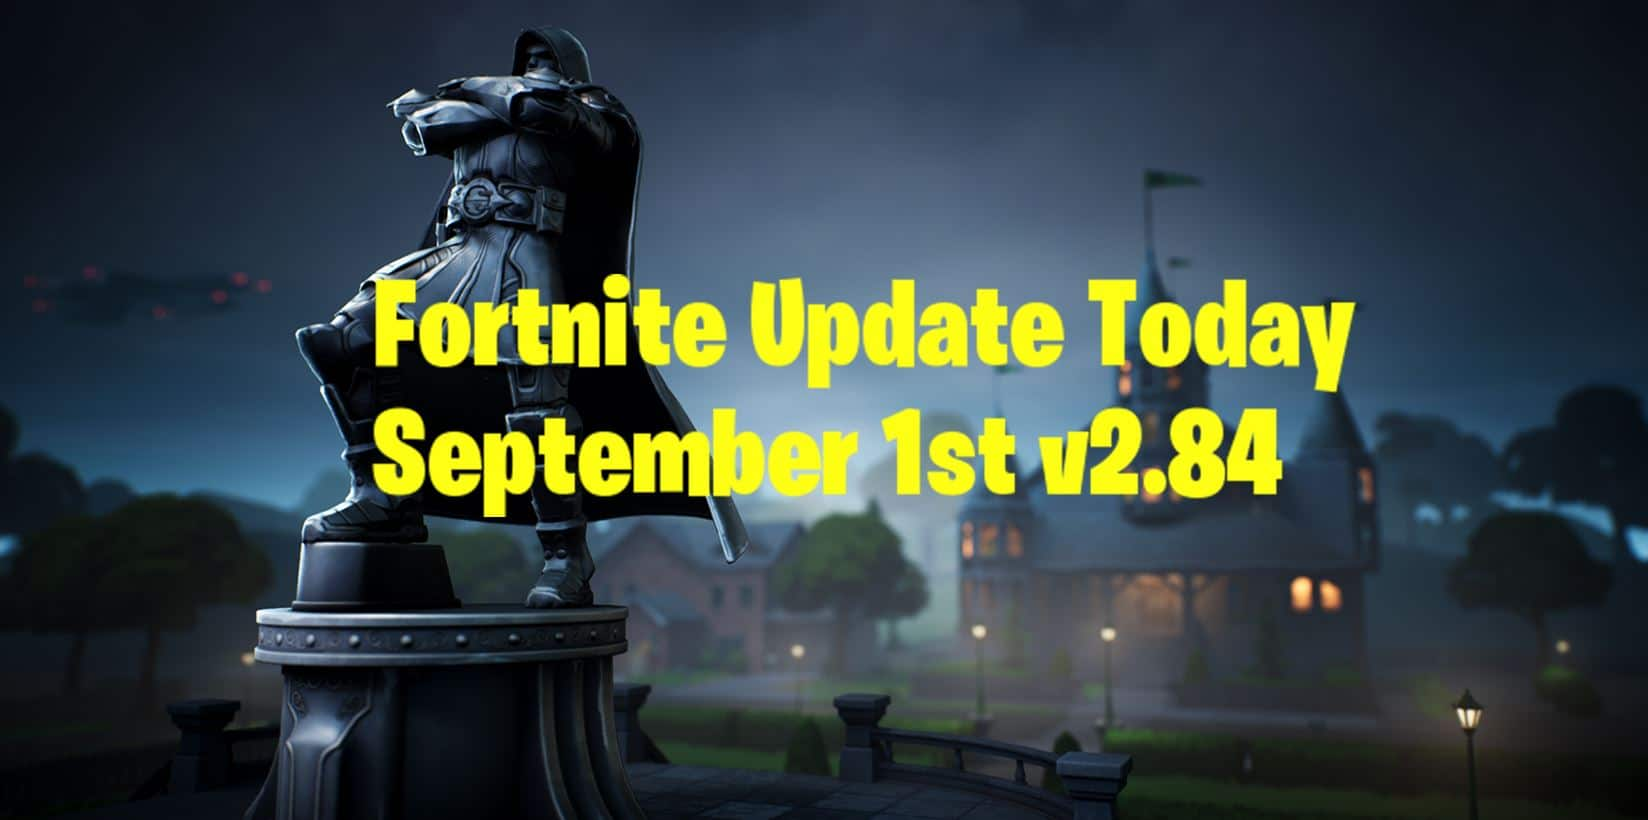 New Fortnite Update Today Patch Notes V2 84 September 1st Fortnite Insider All of my fortnite countdown streams for updates & events! new fortnite update today patch notes